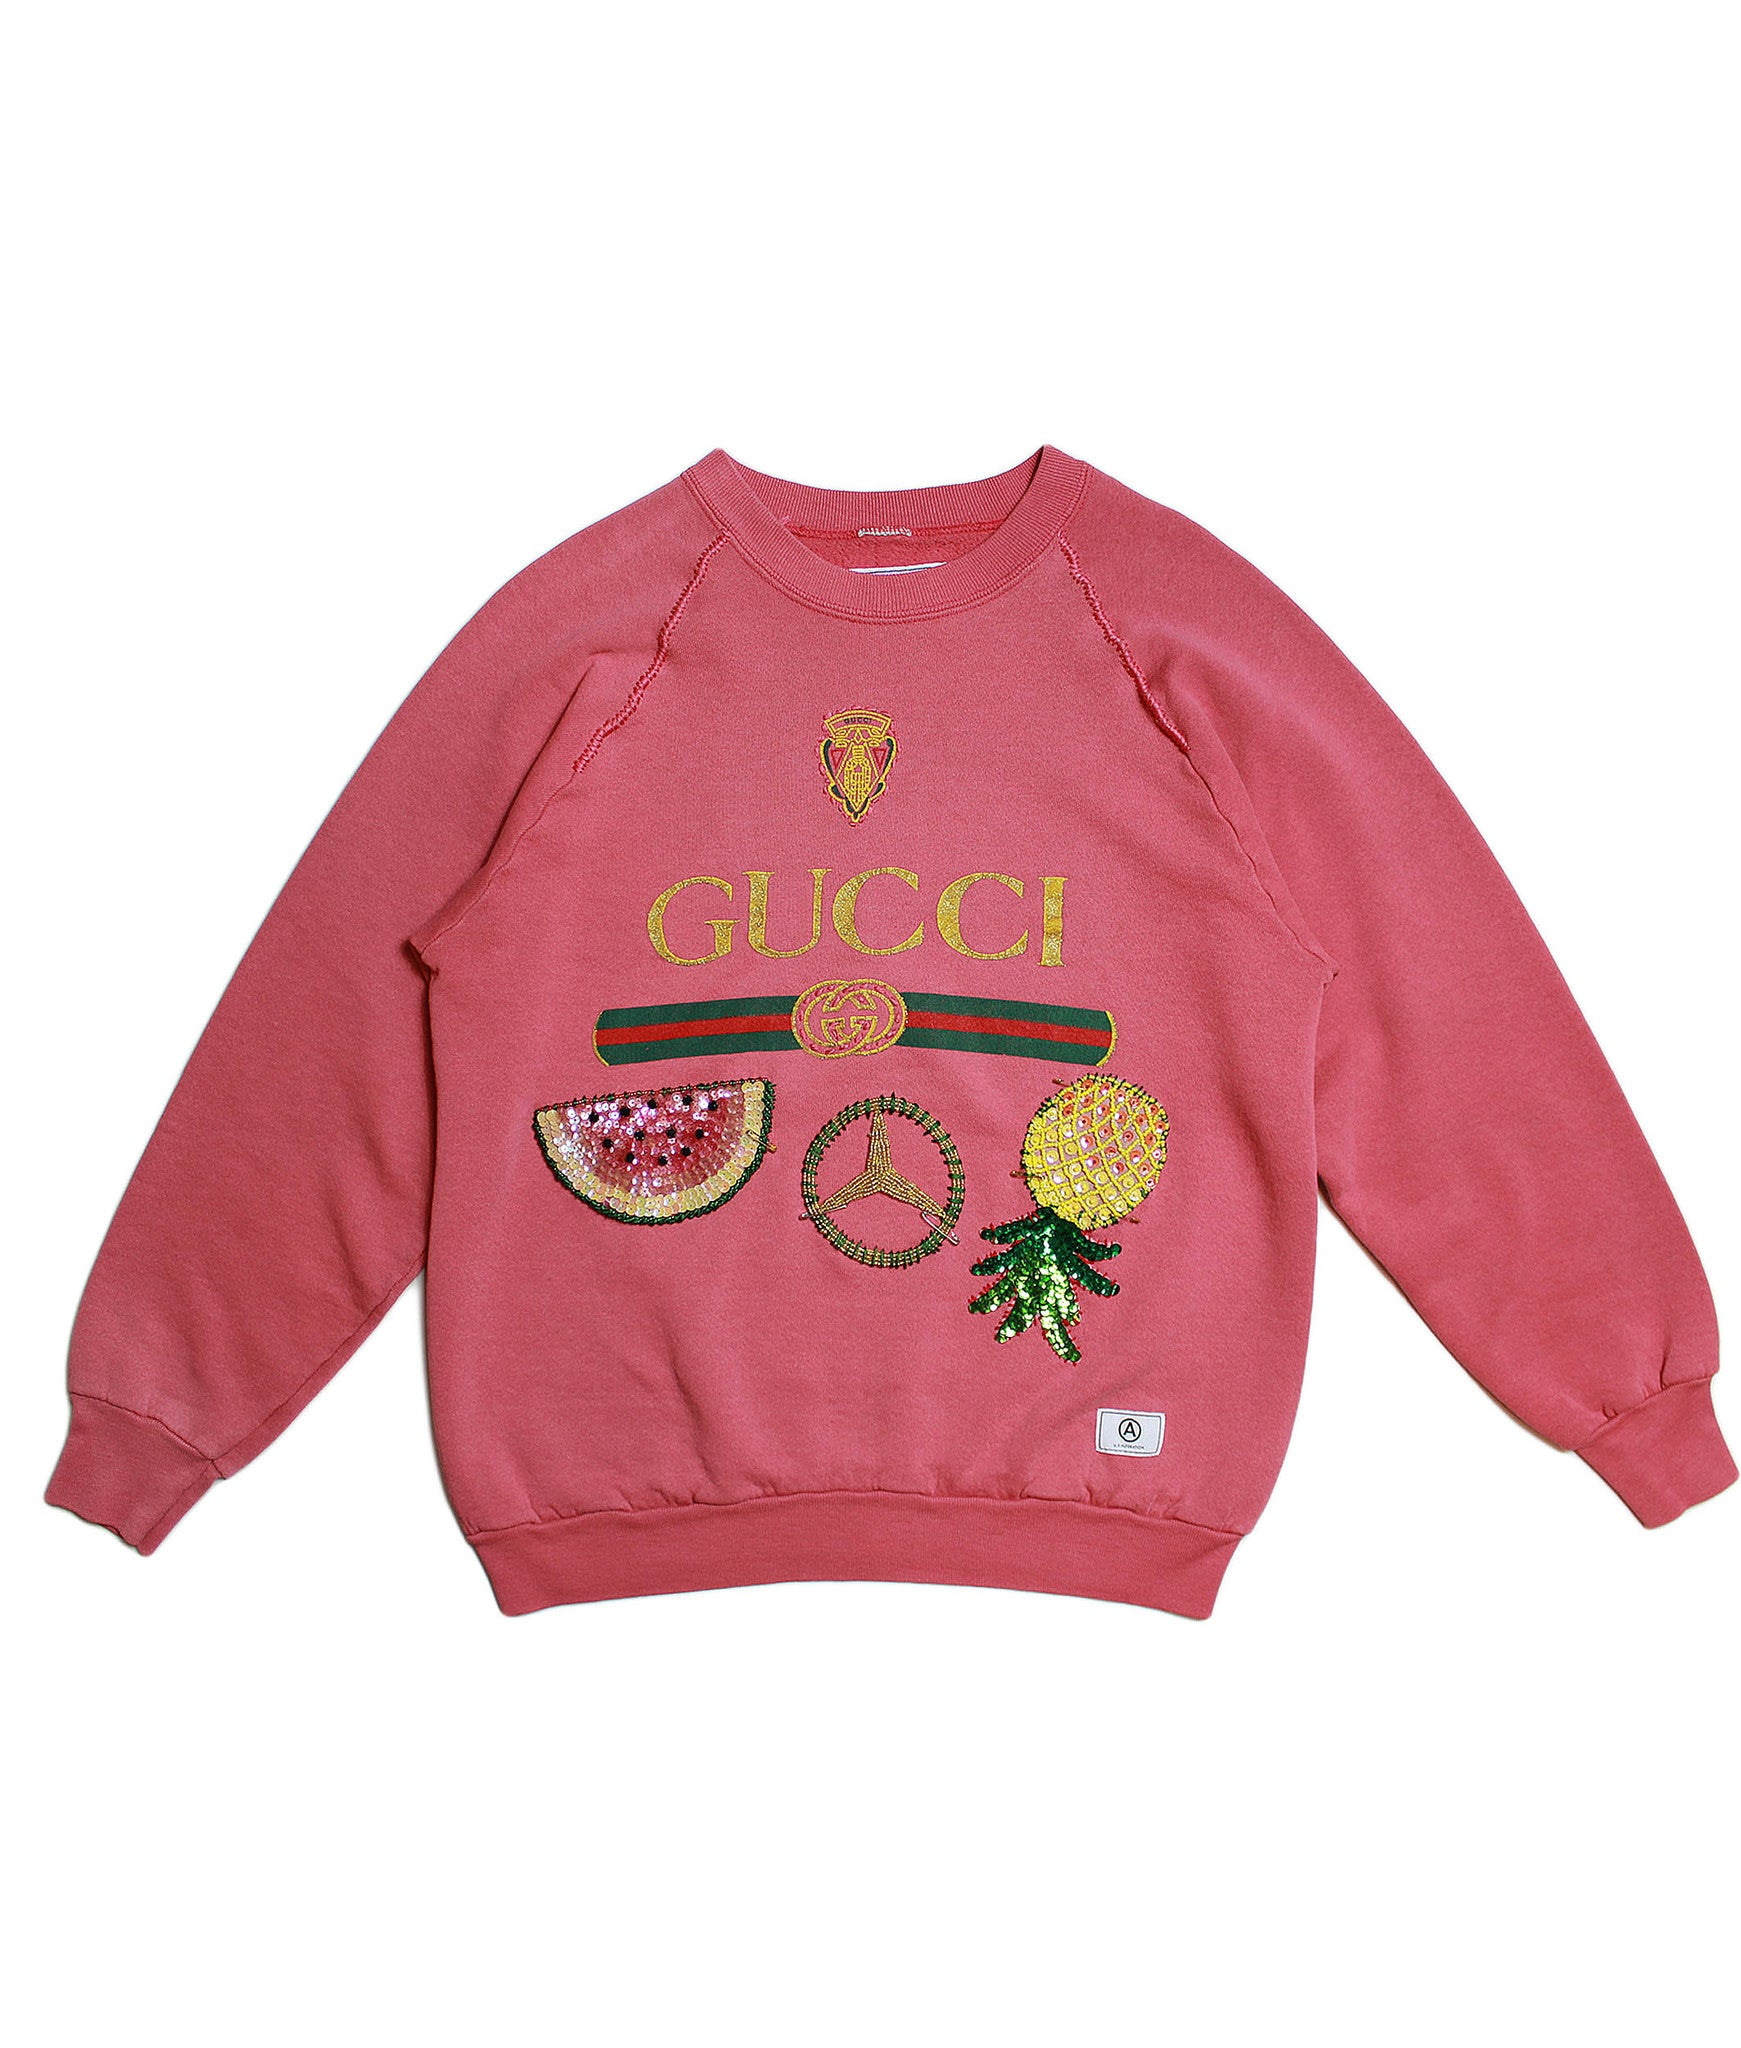 U.S ALTERATION/ GUCCI FRUIT/ VINTAGE SWEATSHIRT/ L